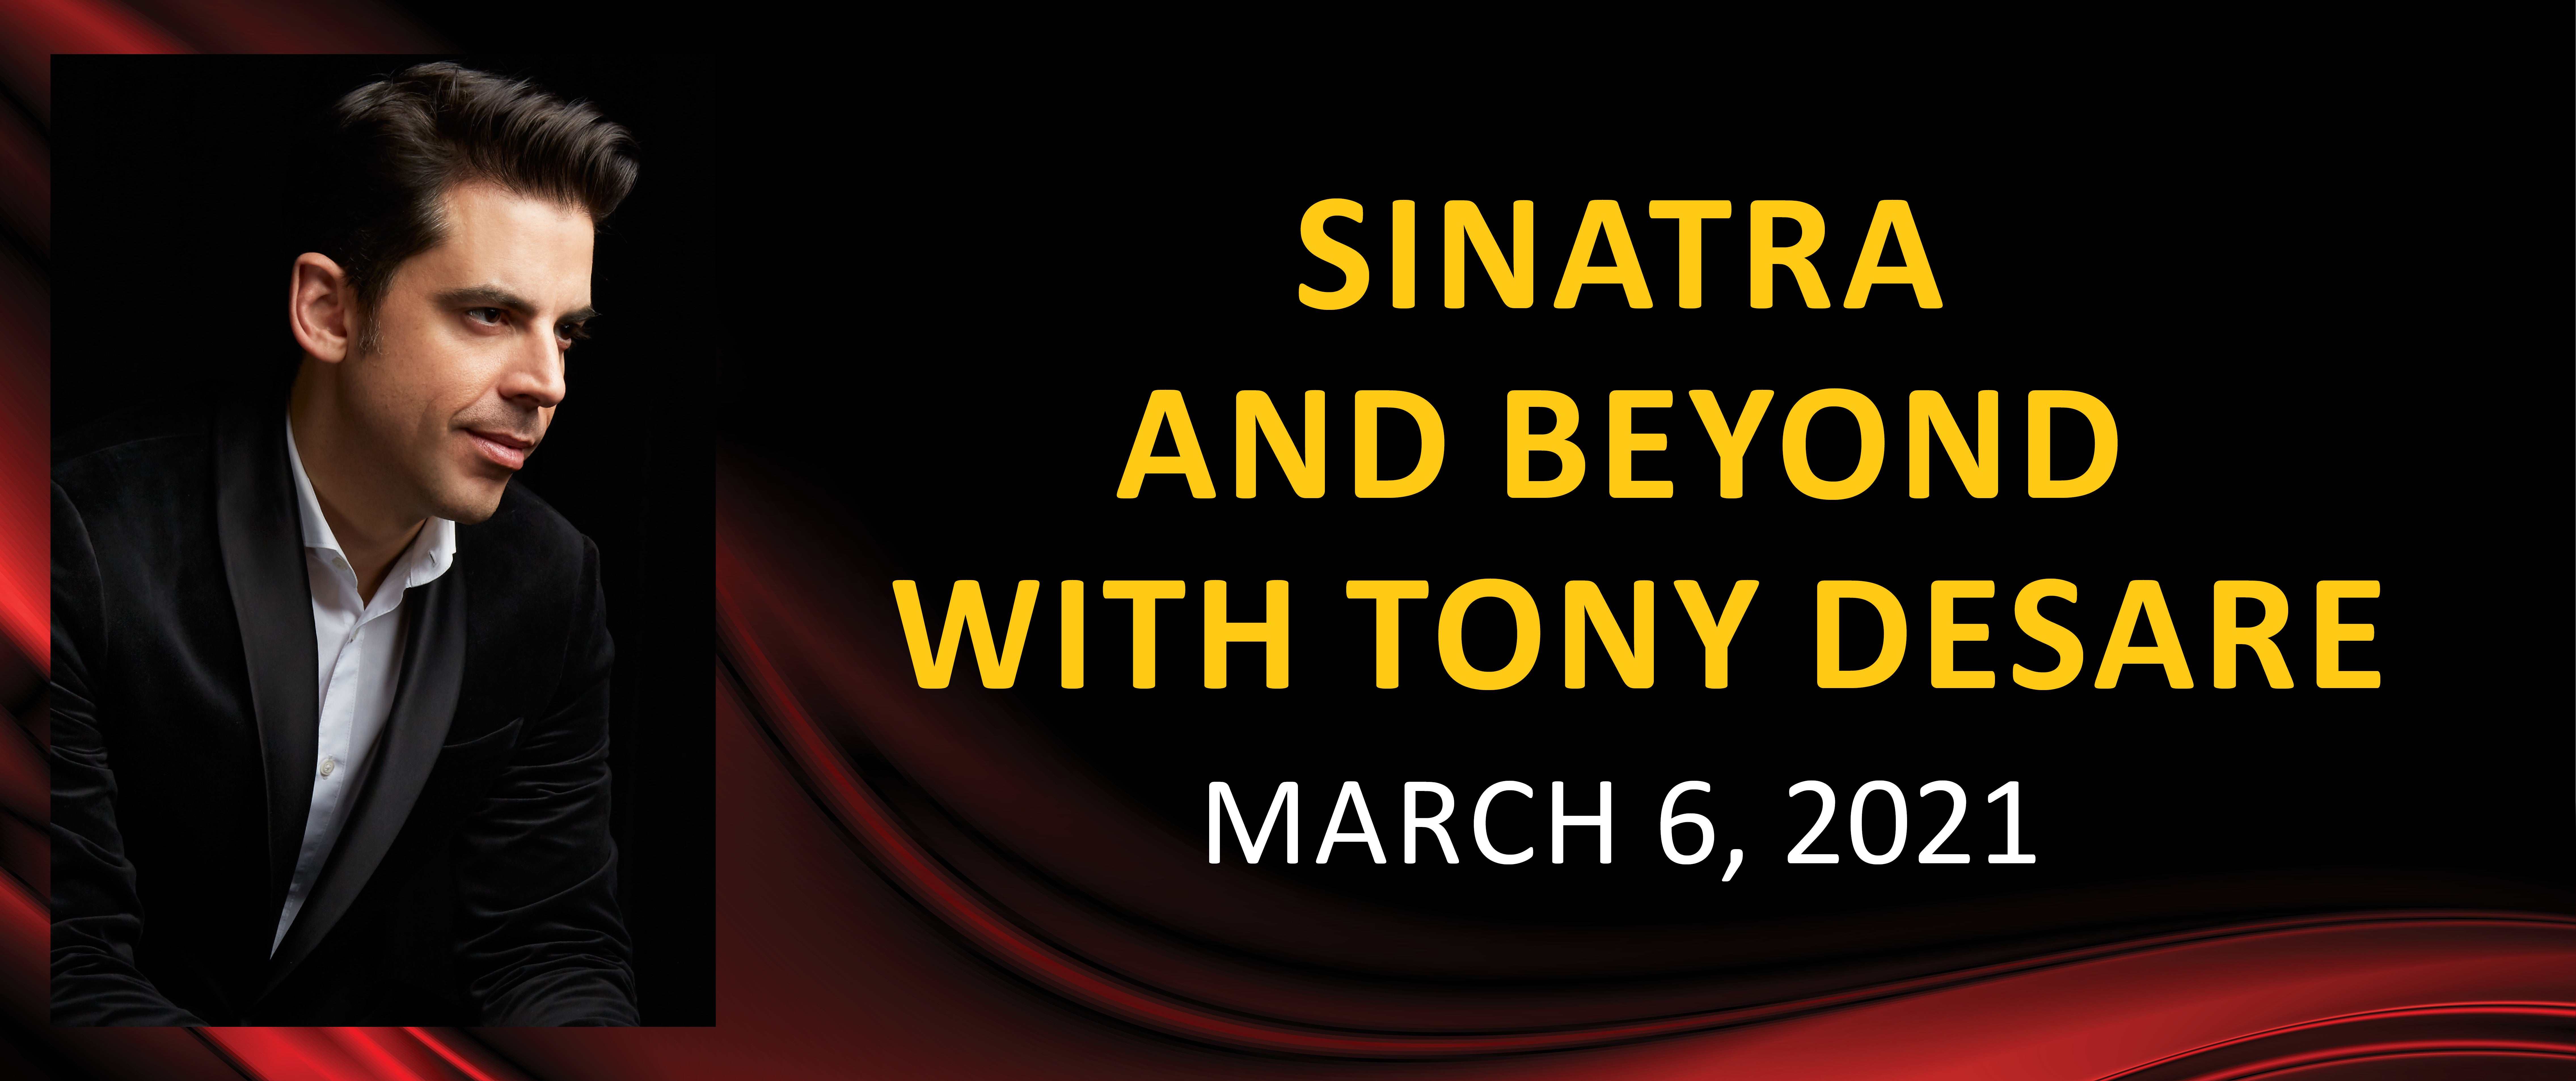 Sinatra and Beyond with Tony Desare